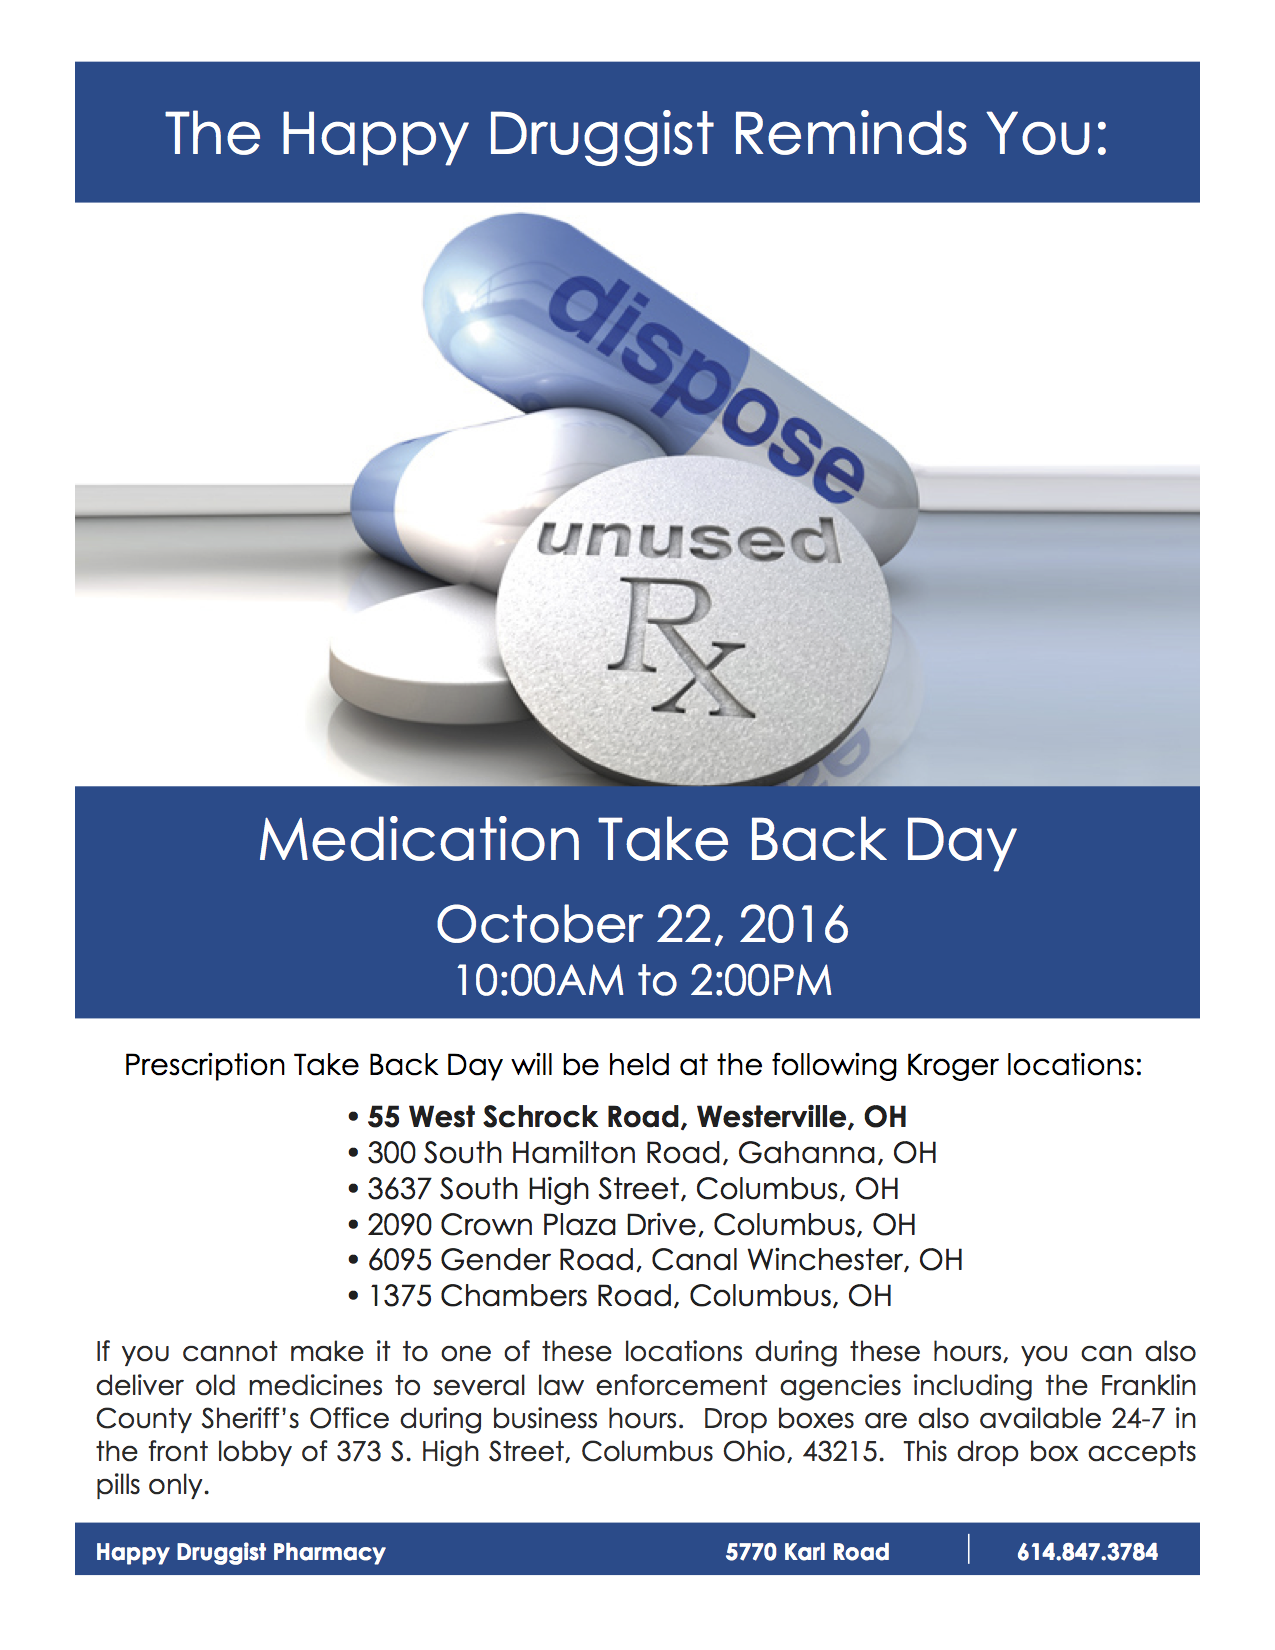 medication-take-back-day-flyer